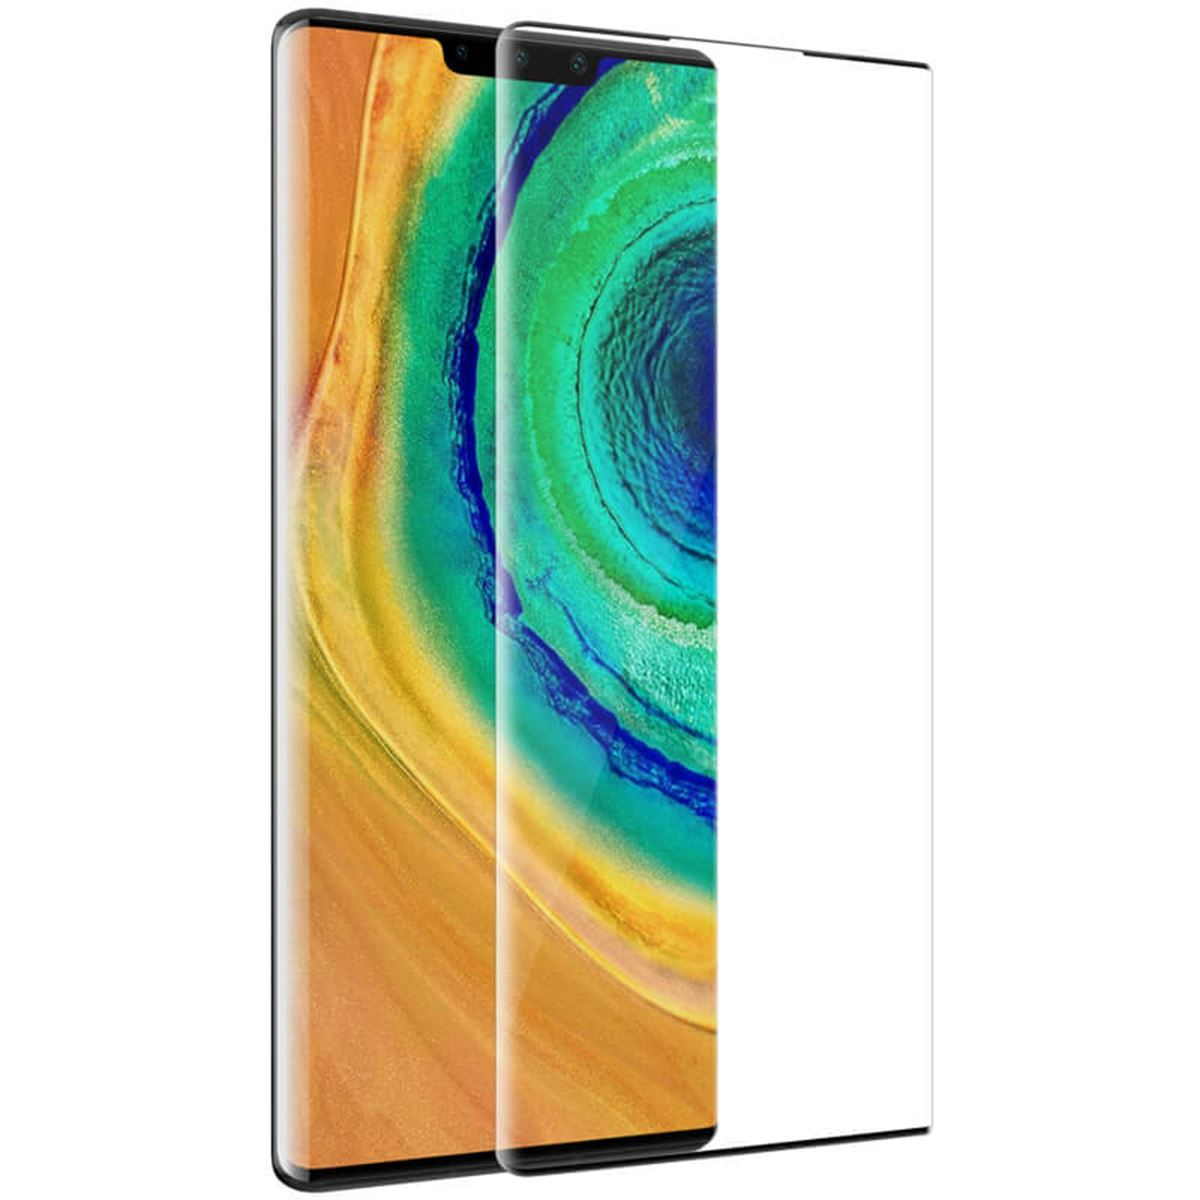 Huawei Mate 20 Tempered Glass Screen Protector - Clear